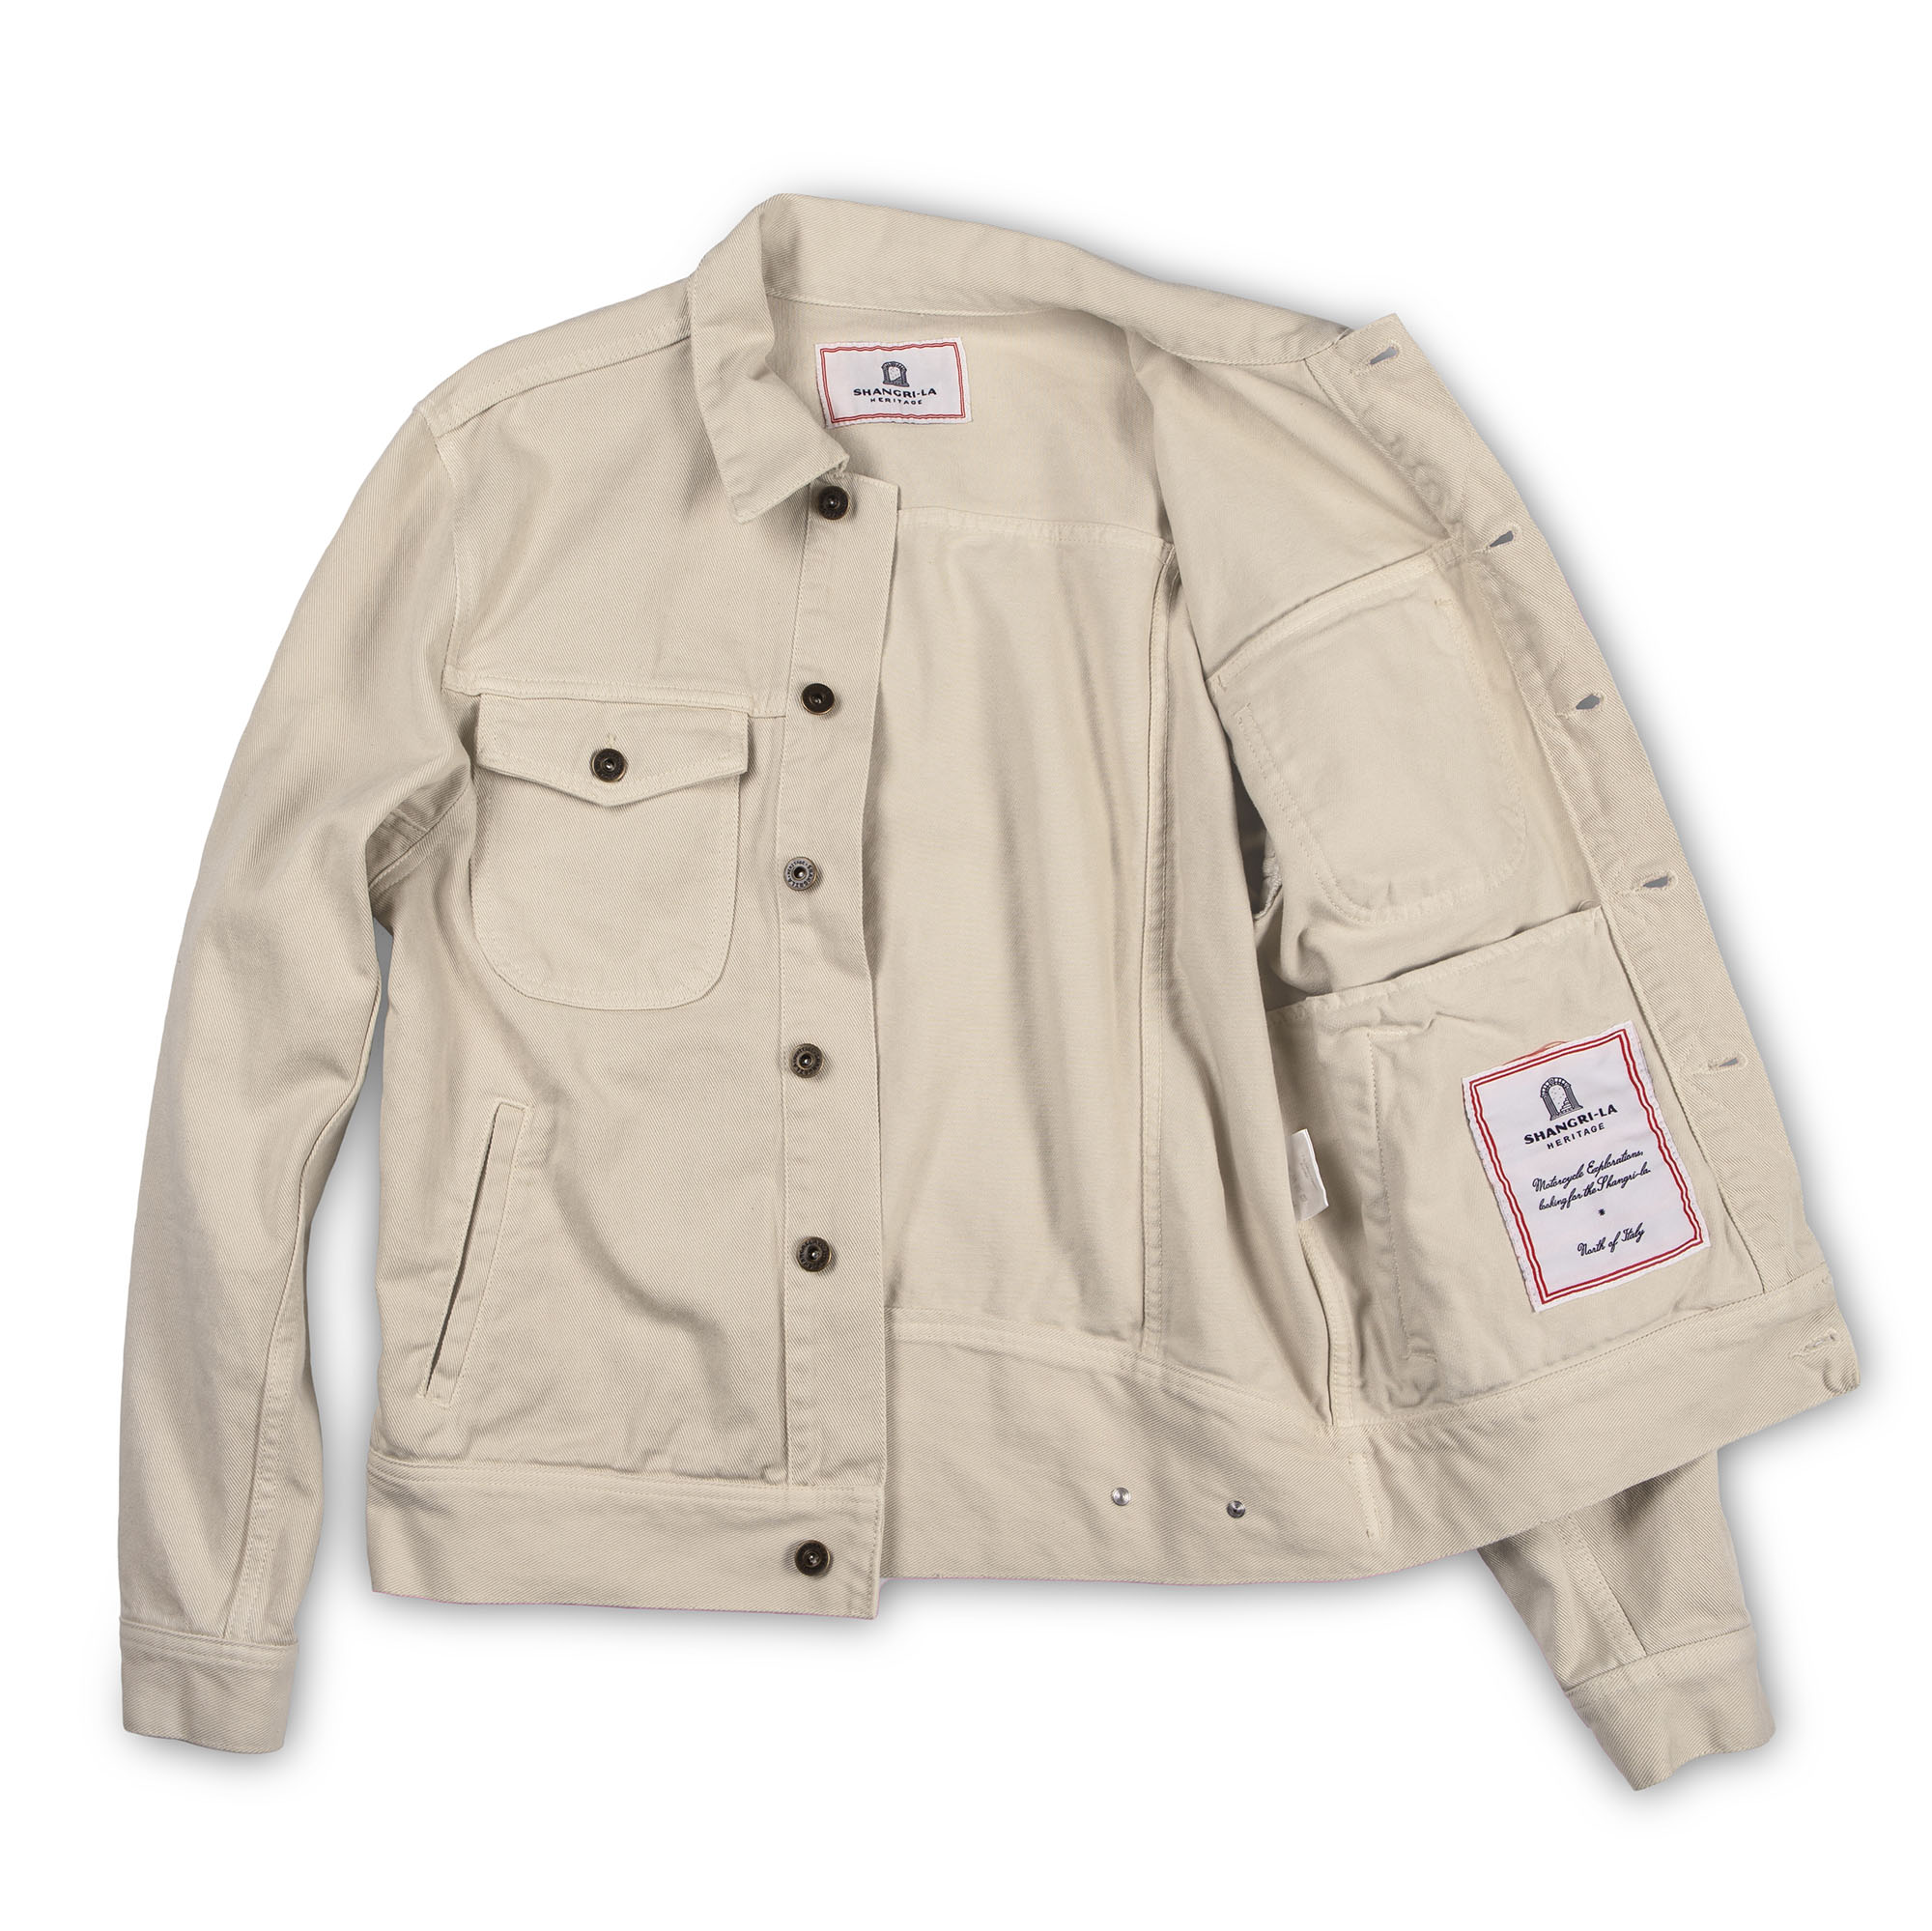 shangri-la-heritage-new-single-rider-ivory-canvas-jacket-still-life-open